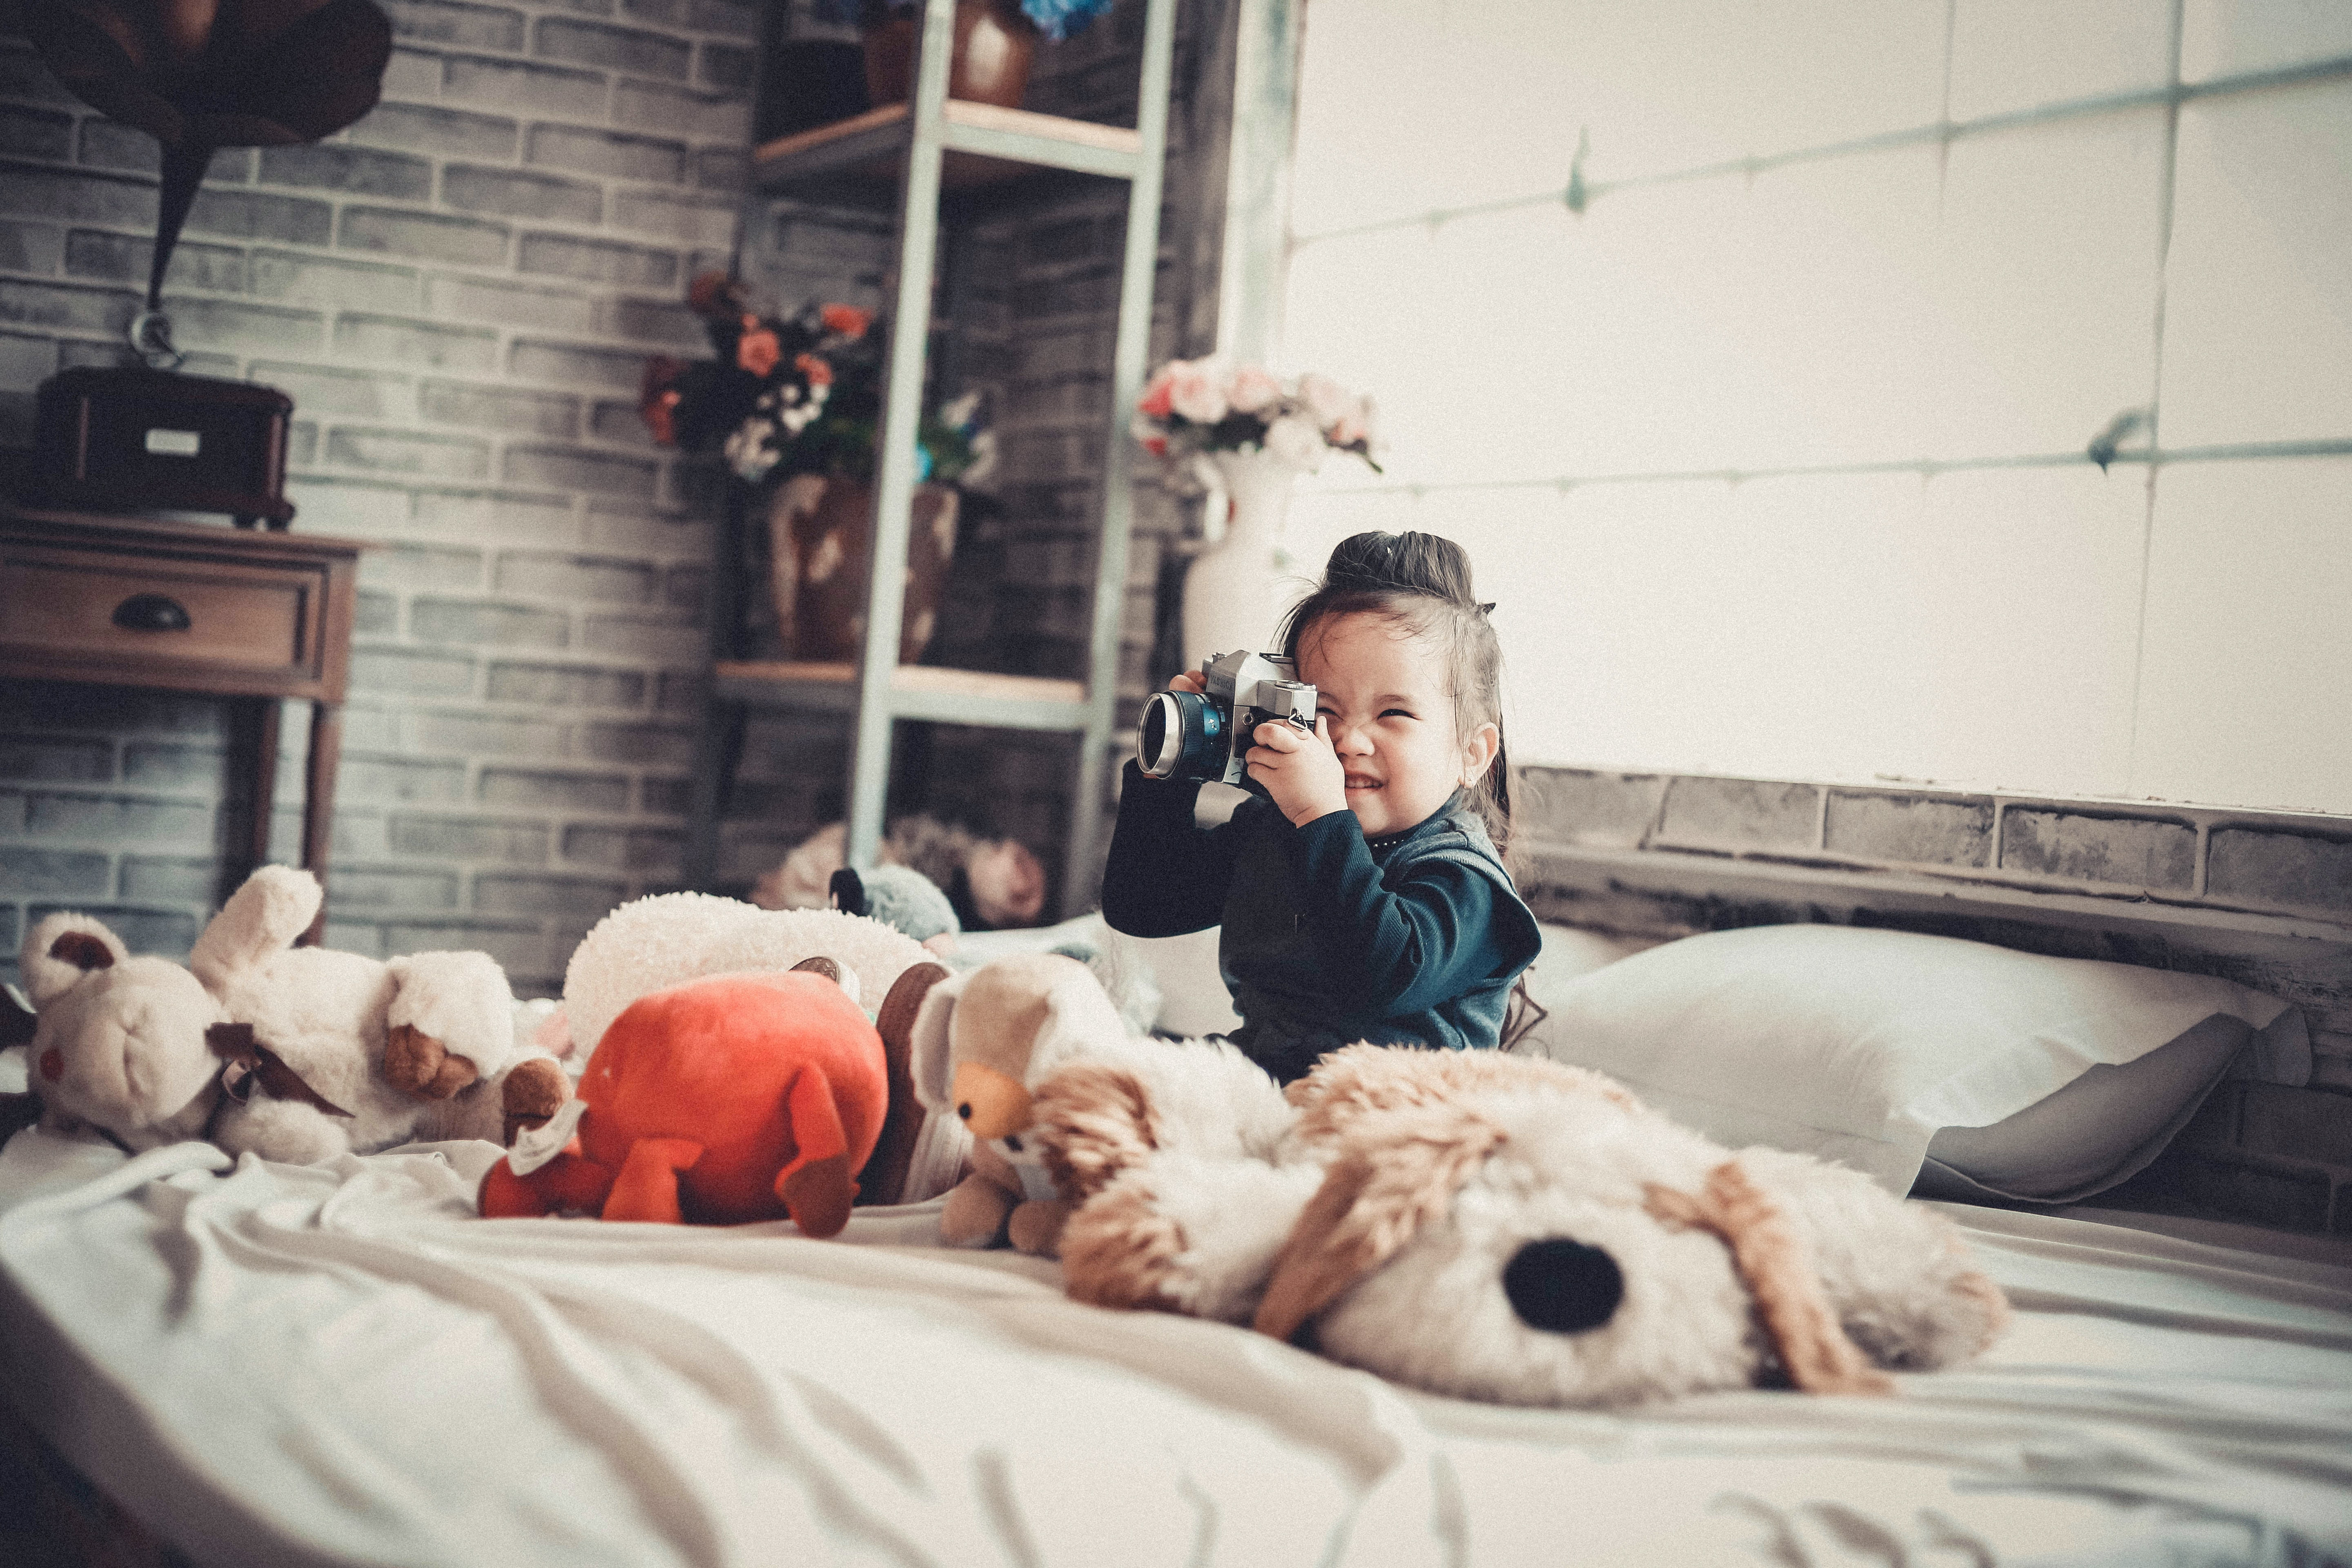 toddler girl, sitting on bed with cuddly toys, taking a photograph - when kids share a room